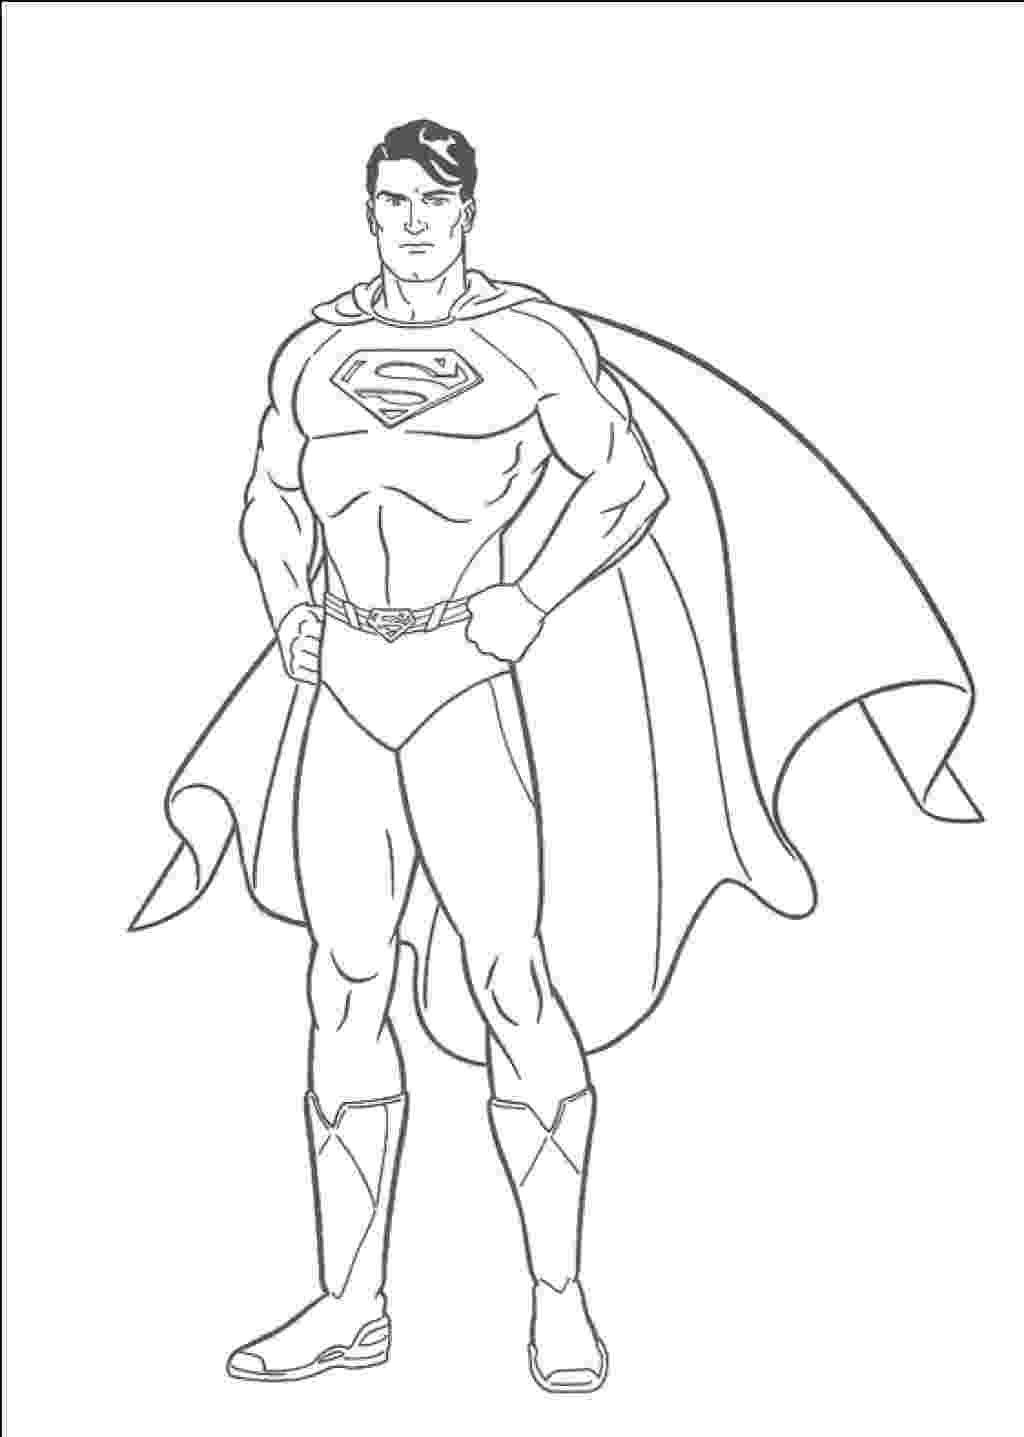 superman coloring pages free printable superman coloring pages for kids cool2bkids superman pages coloring